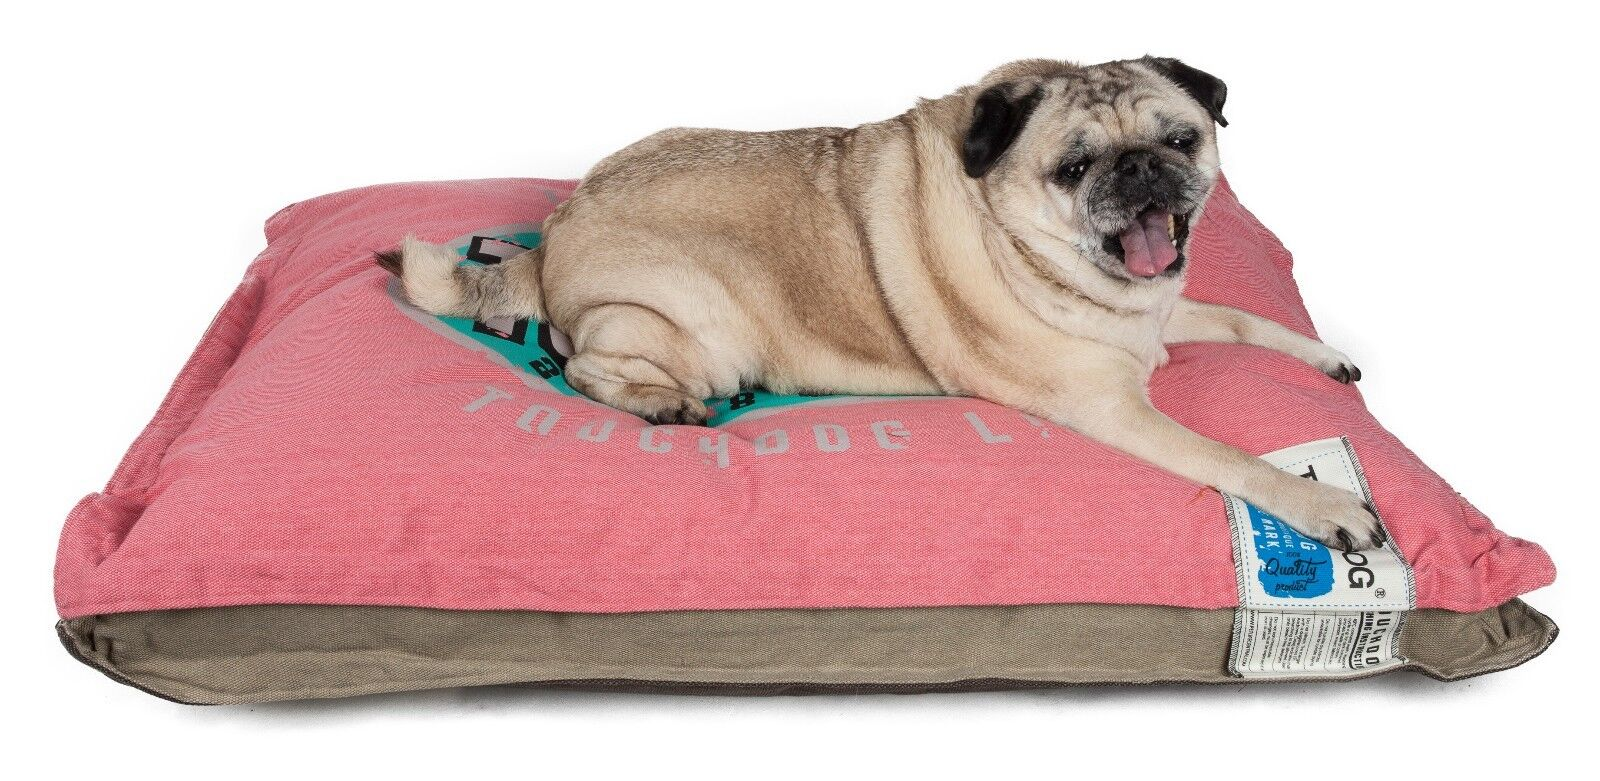 Sporty Shock-Stitched Reversible Rectangular Thick Dog Mat Bed